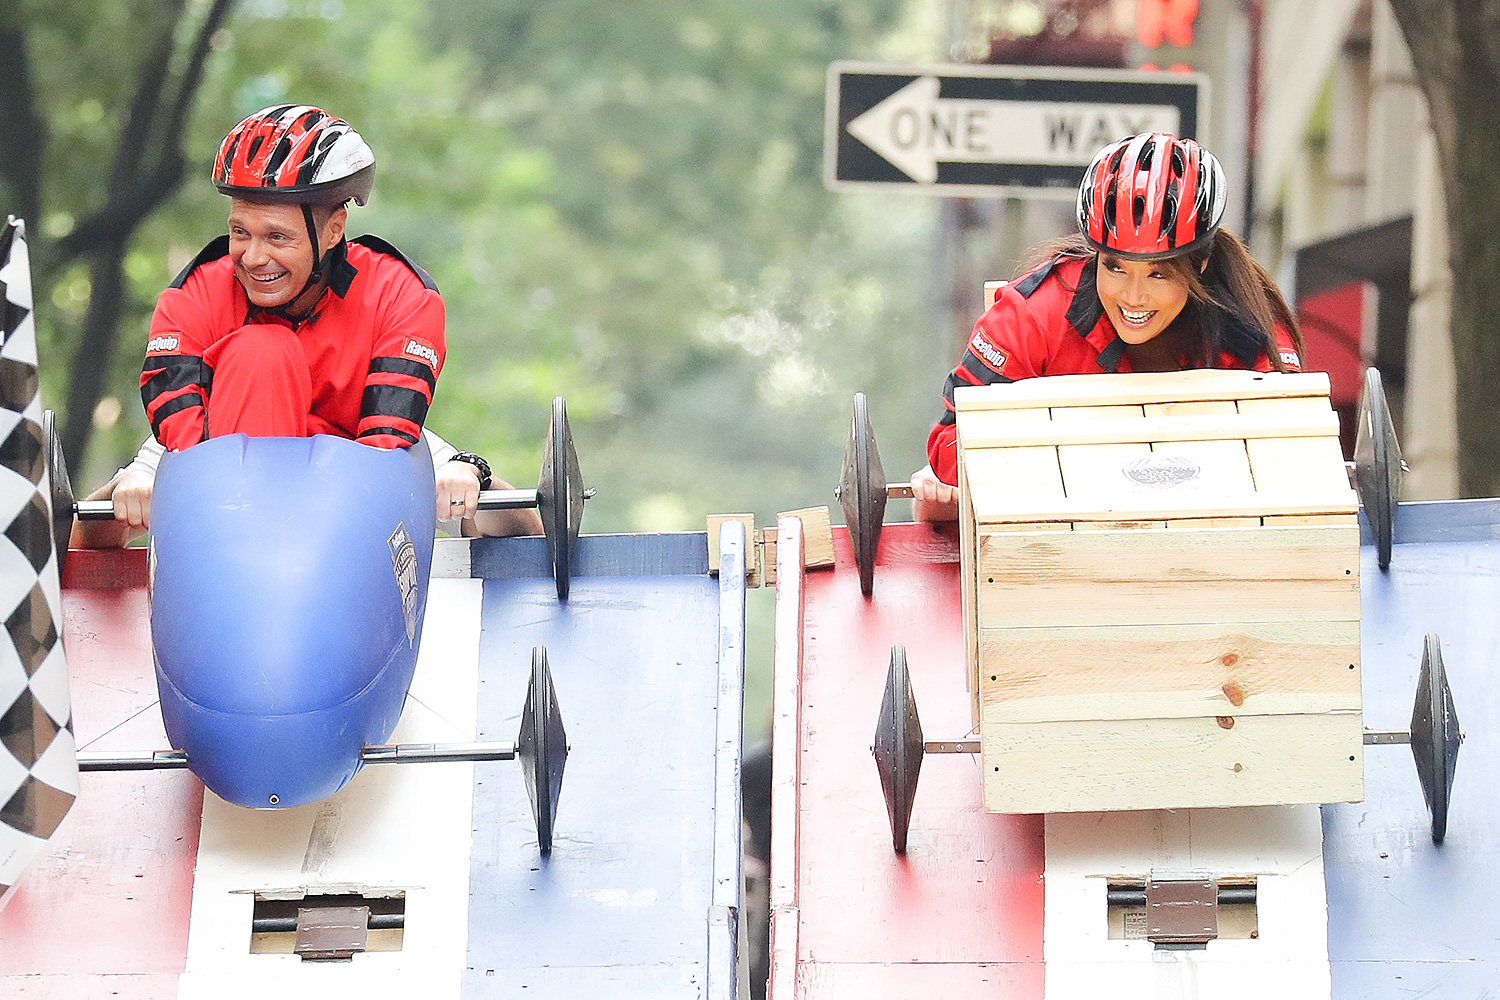 EXCLUSIVE: Ryan Seacrest and Carrie Ann Inaba are seen doing a box car race outside the 'Live with Kelly and Ryan' studios in New York City